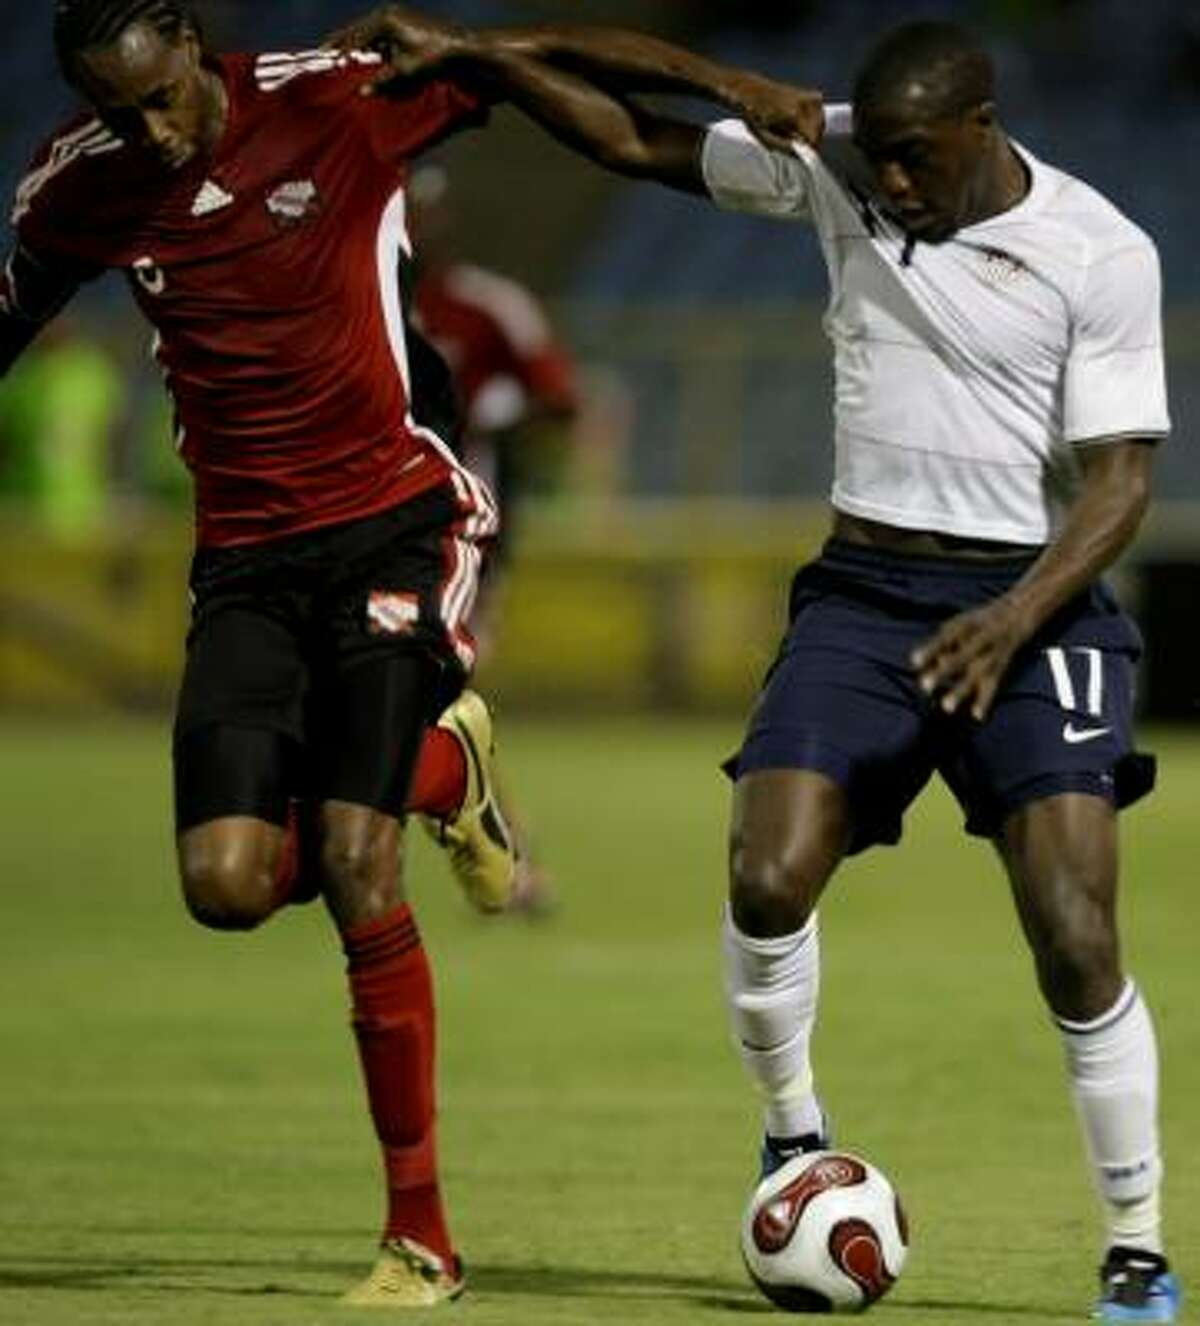 The united States' Jozy Altidore, right, fights for the ball with Trinidad and Tobago's Dennis Lawrence.